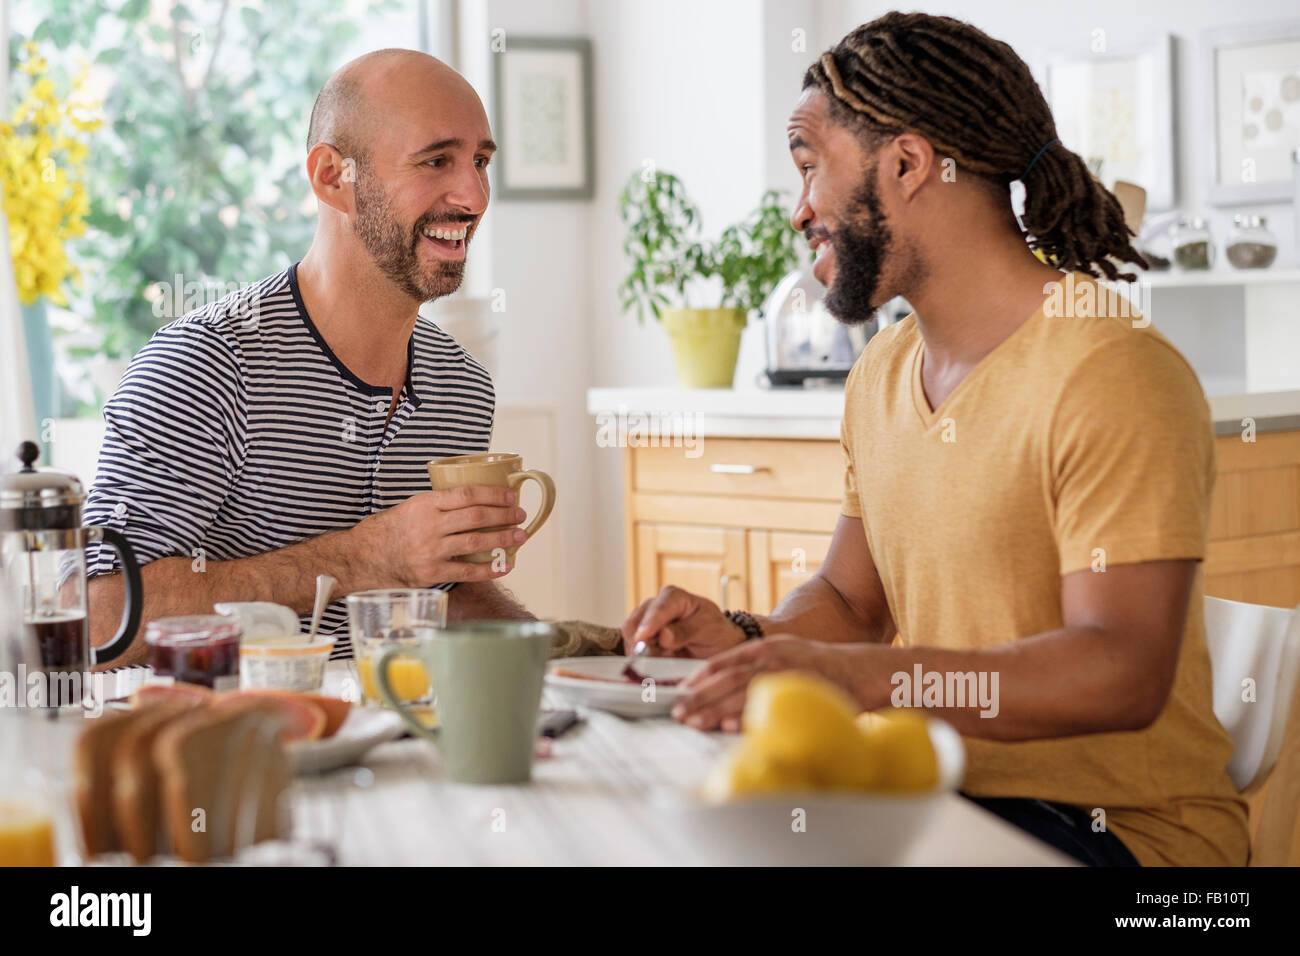 Smiley homosexual couple having breakfast in kitchen - Stock Image